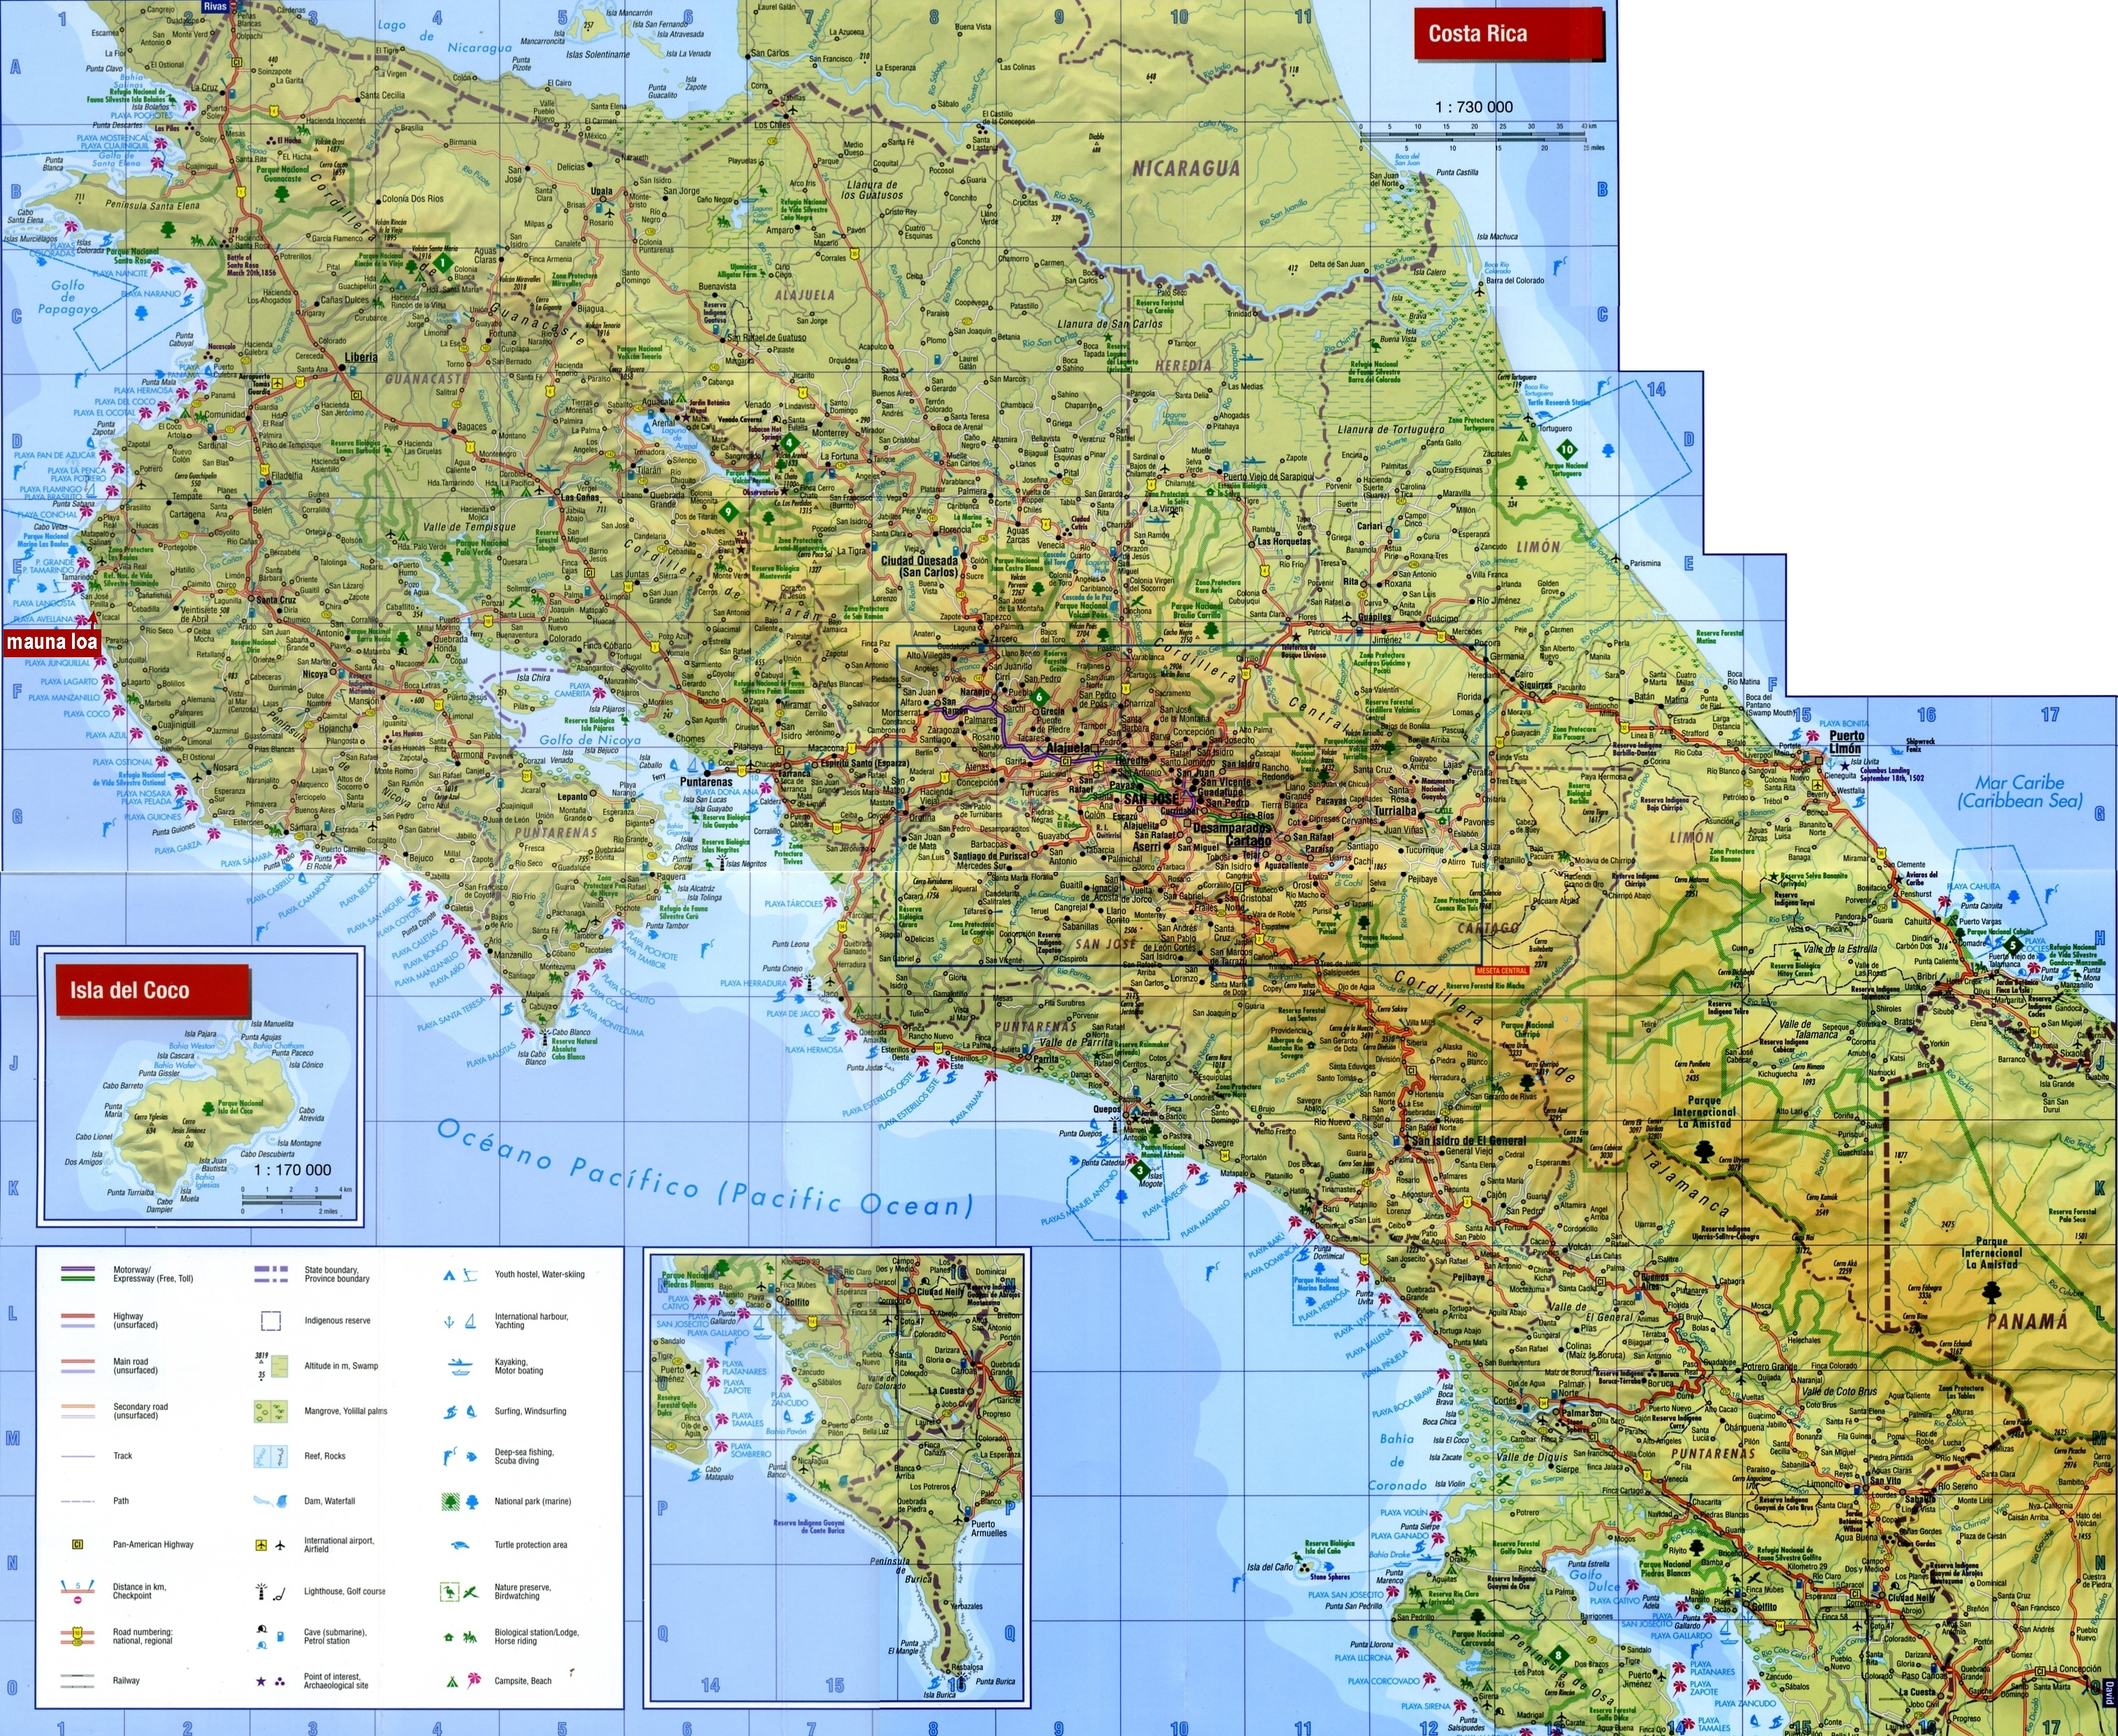 Large Detailed Map Of Costa Rica With Cities And Towns - Free Printable Map Of Costa Rica